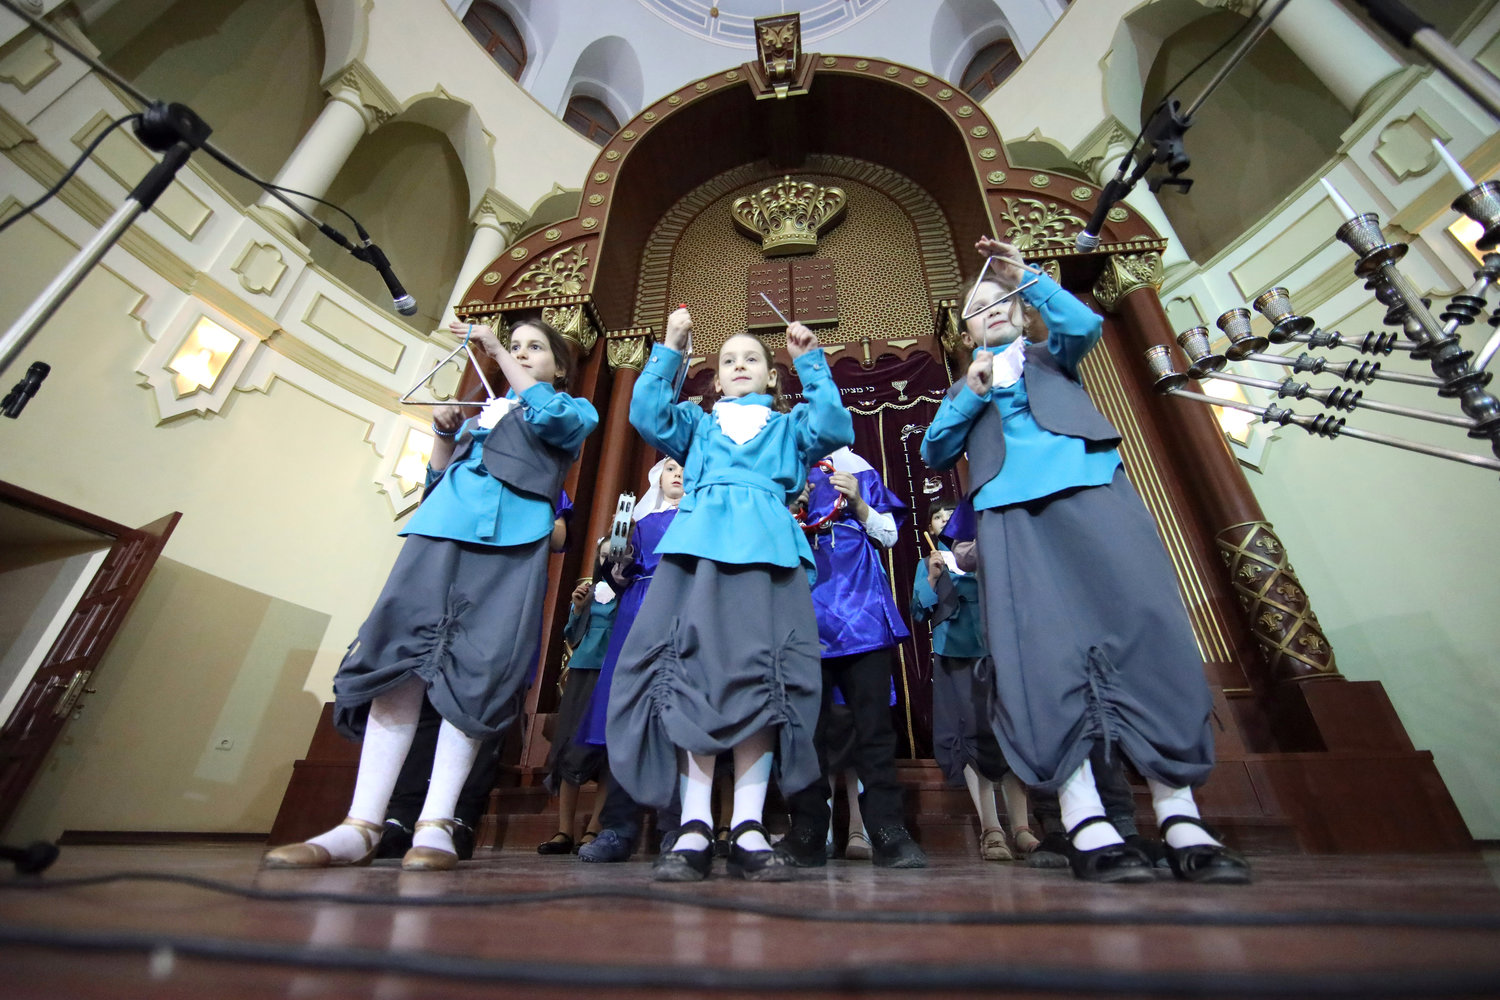 Children play musical instruments during the celebration of Chanukah at the Kharkiv Choral Synagogue, Kharkiv, northeastern Ukraine, on Dec. 5, 2018.